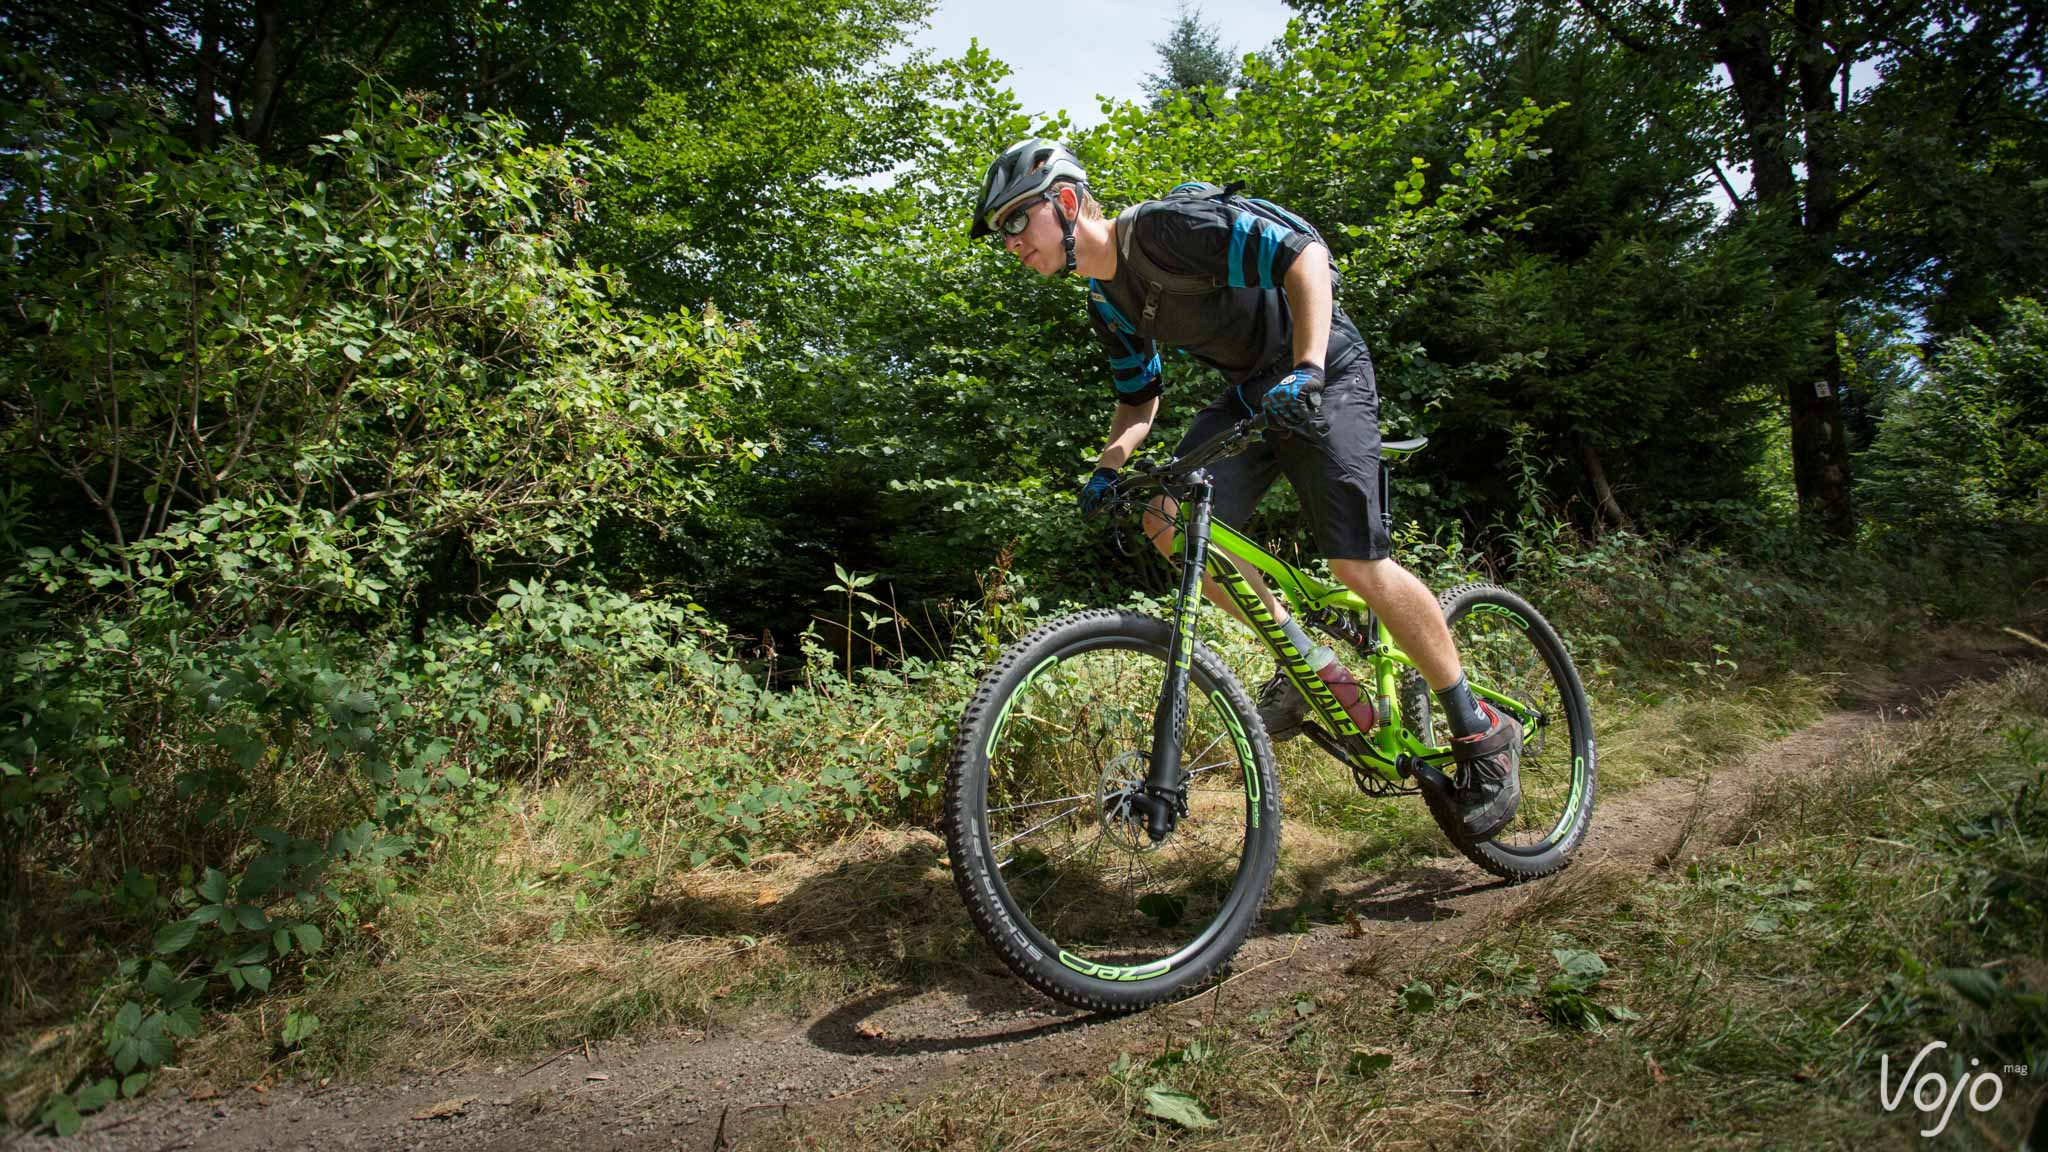 Cannondale-habit-2016-Hi-mod-1-vojo-paul-humbert-first-ride-66